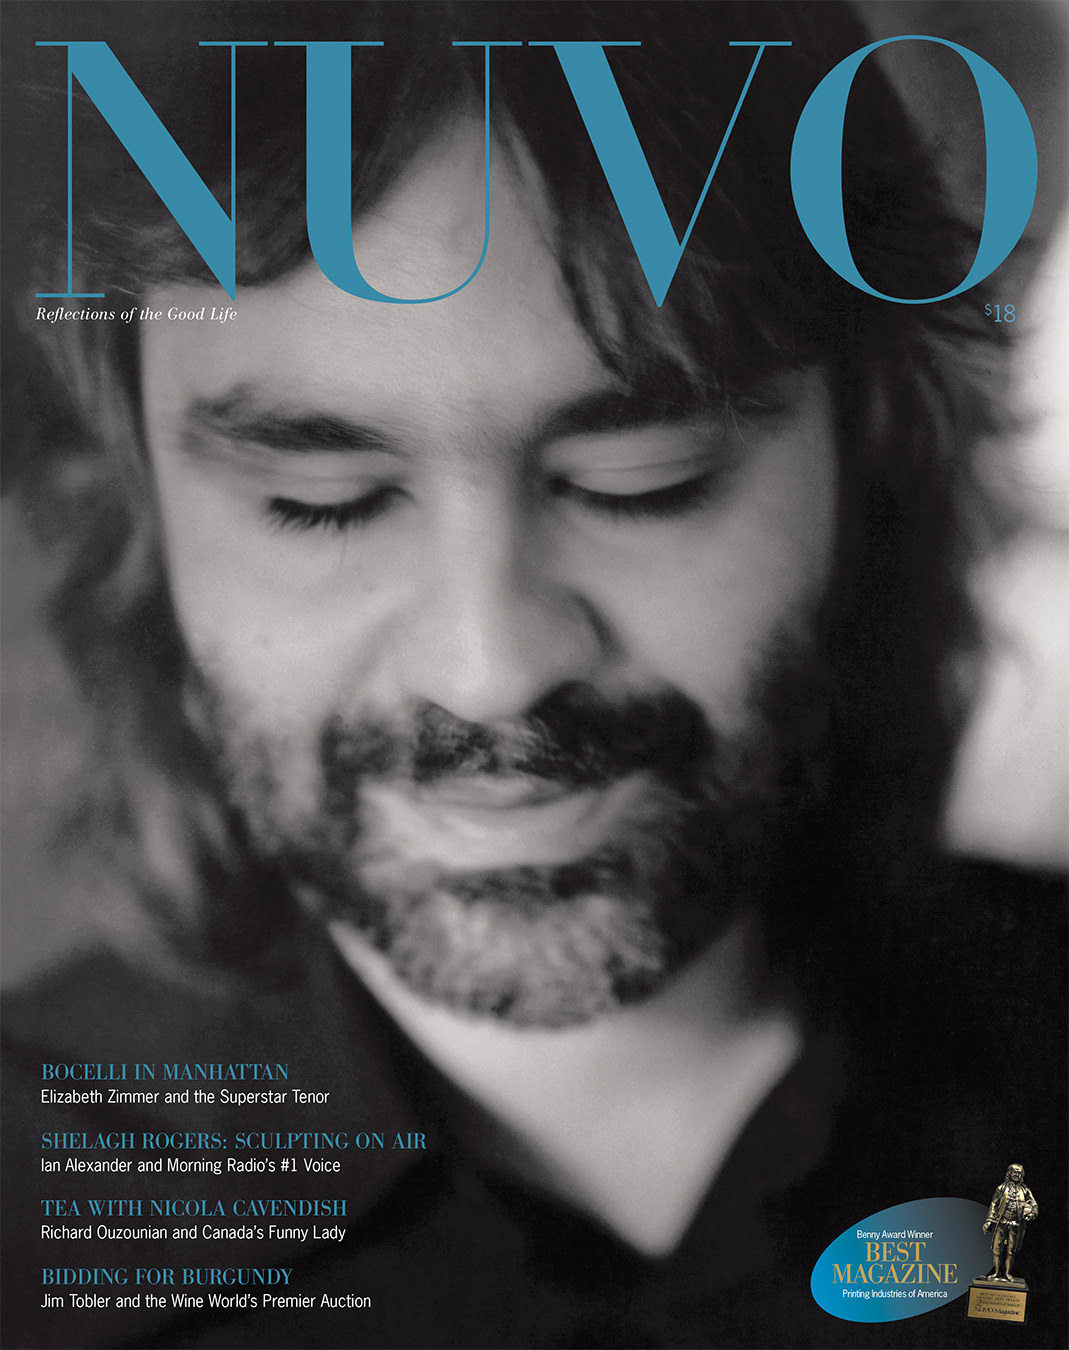 NUVO Magazine Spring 2001 Cover featuring Andrea Bocelli